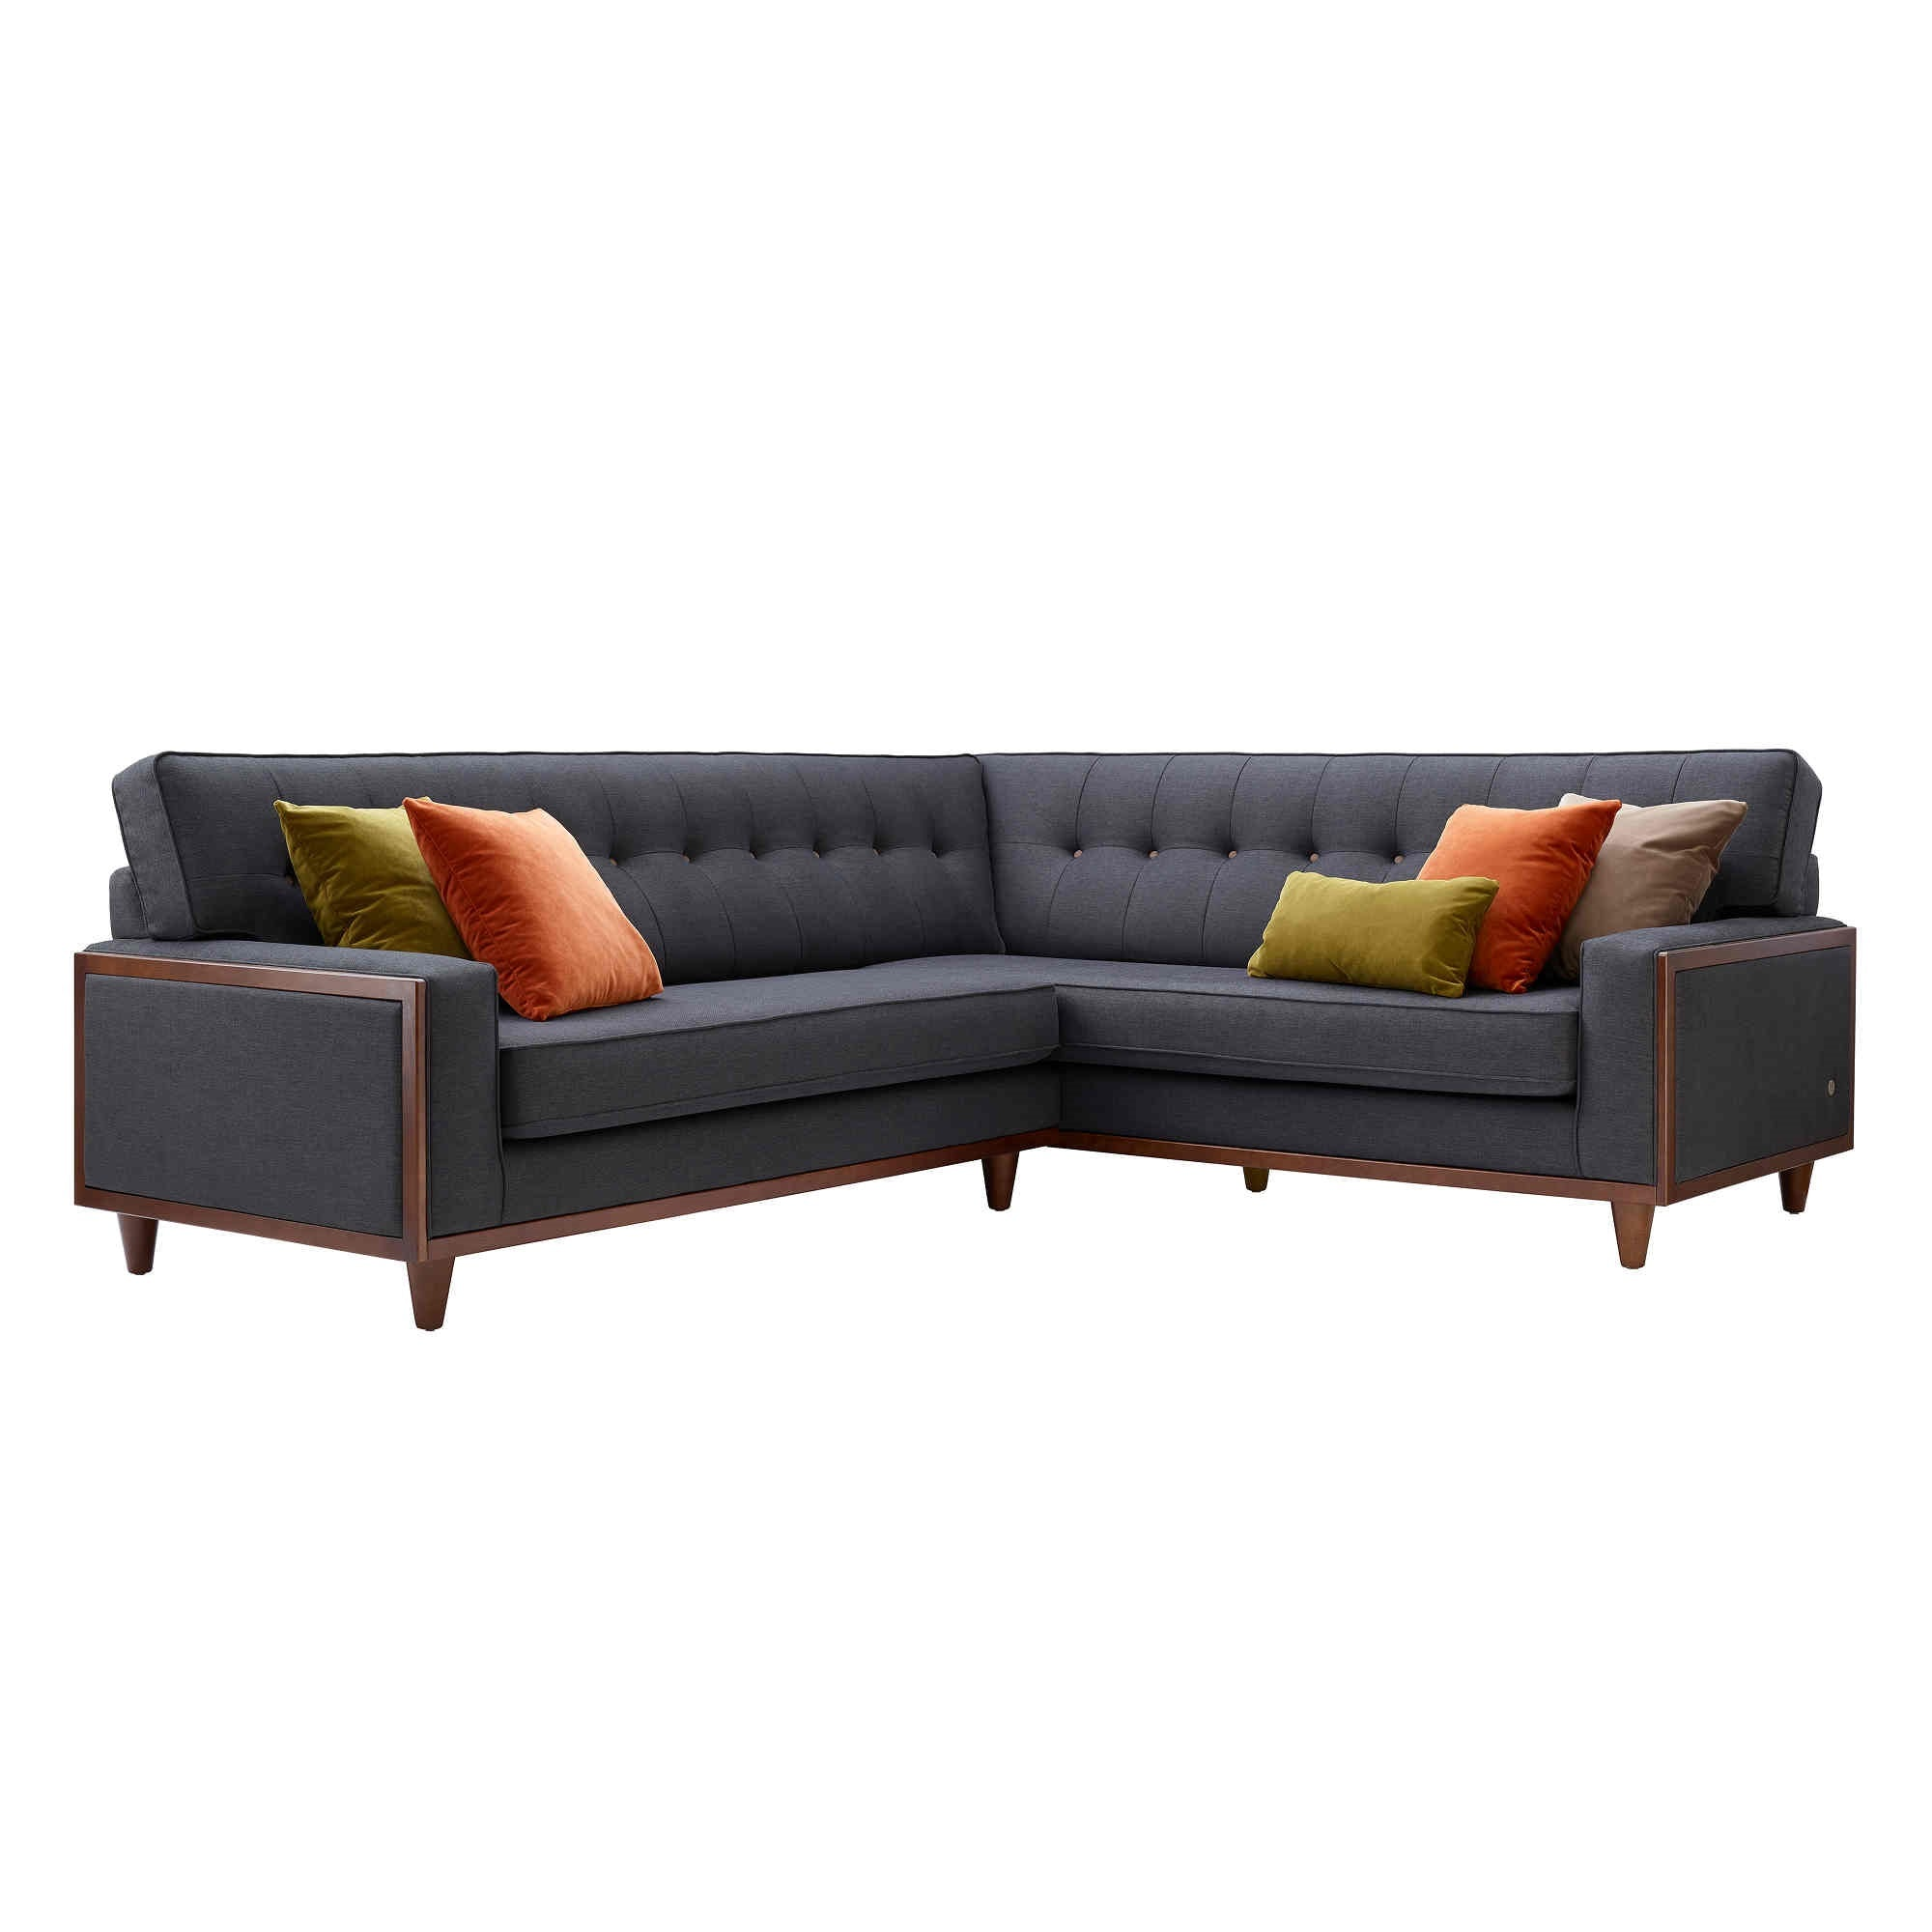 The Fifty Nine Fabric Corner Sofa right hand